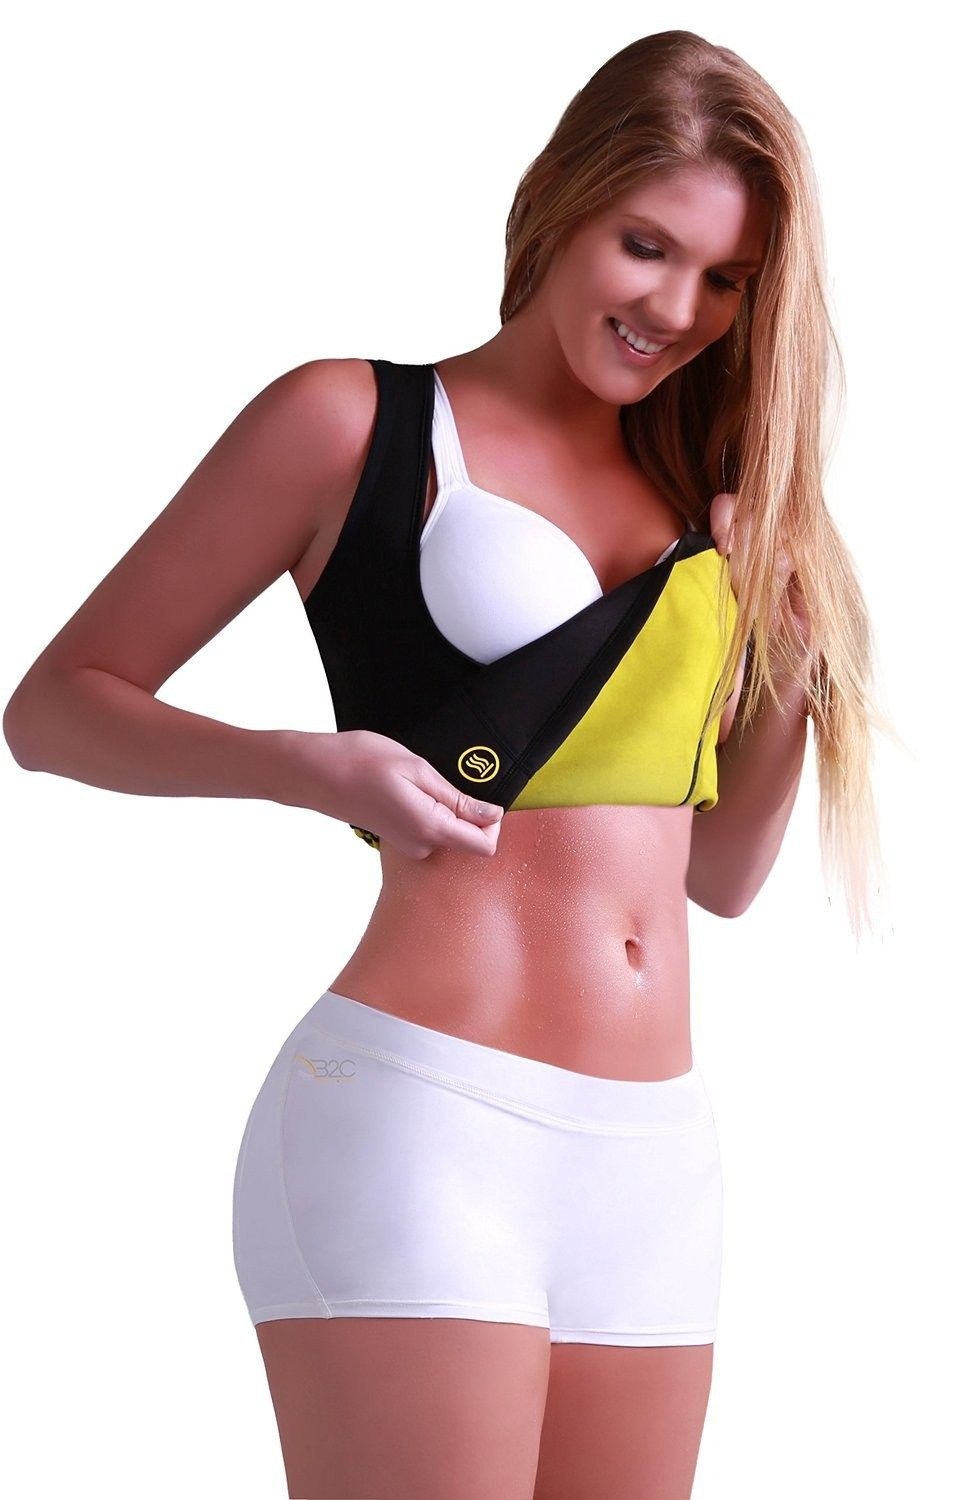 0fae26666d Hot Shapers Cami in pakistan 03359999315 free home delivery hot shapers  cami price in pakistan https